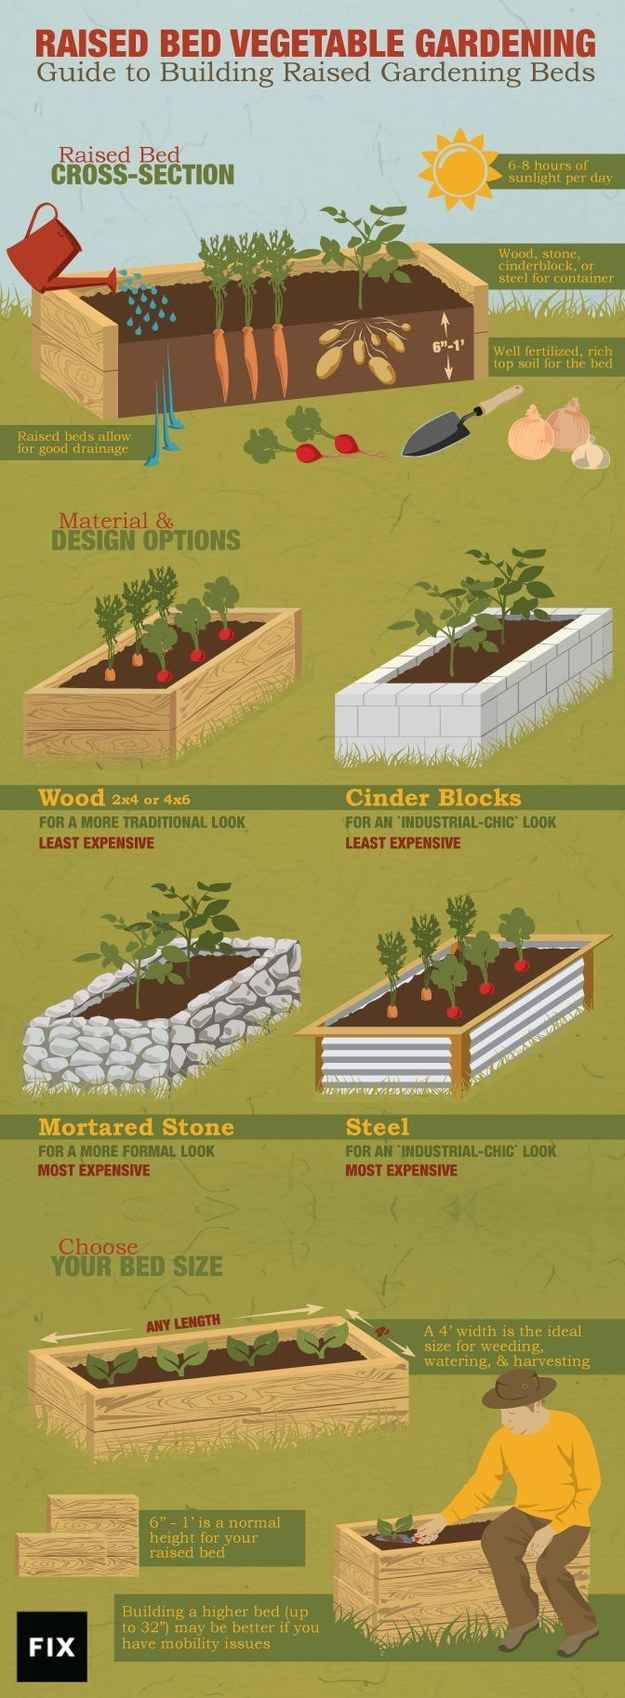 small resolution of raised gardening beds keep vegetables away from contaminated soil can deter some pests and are easier on backs and knees here s some information about how